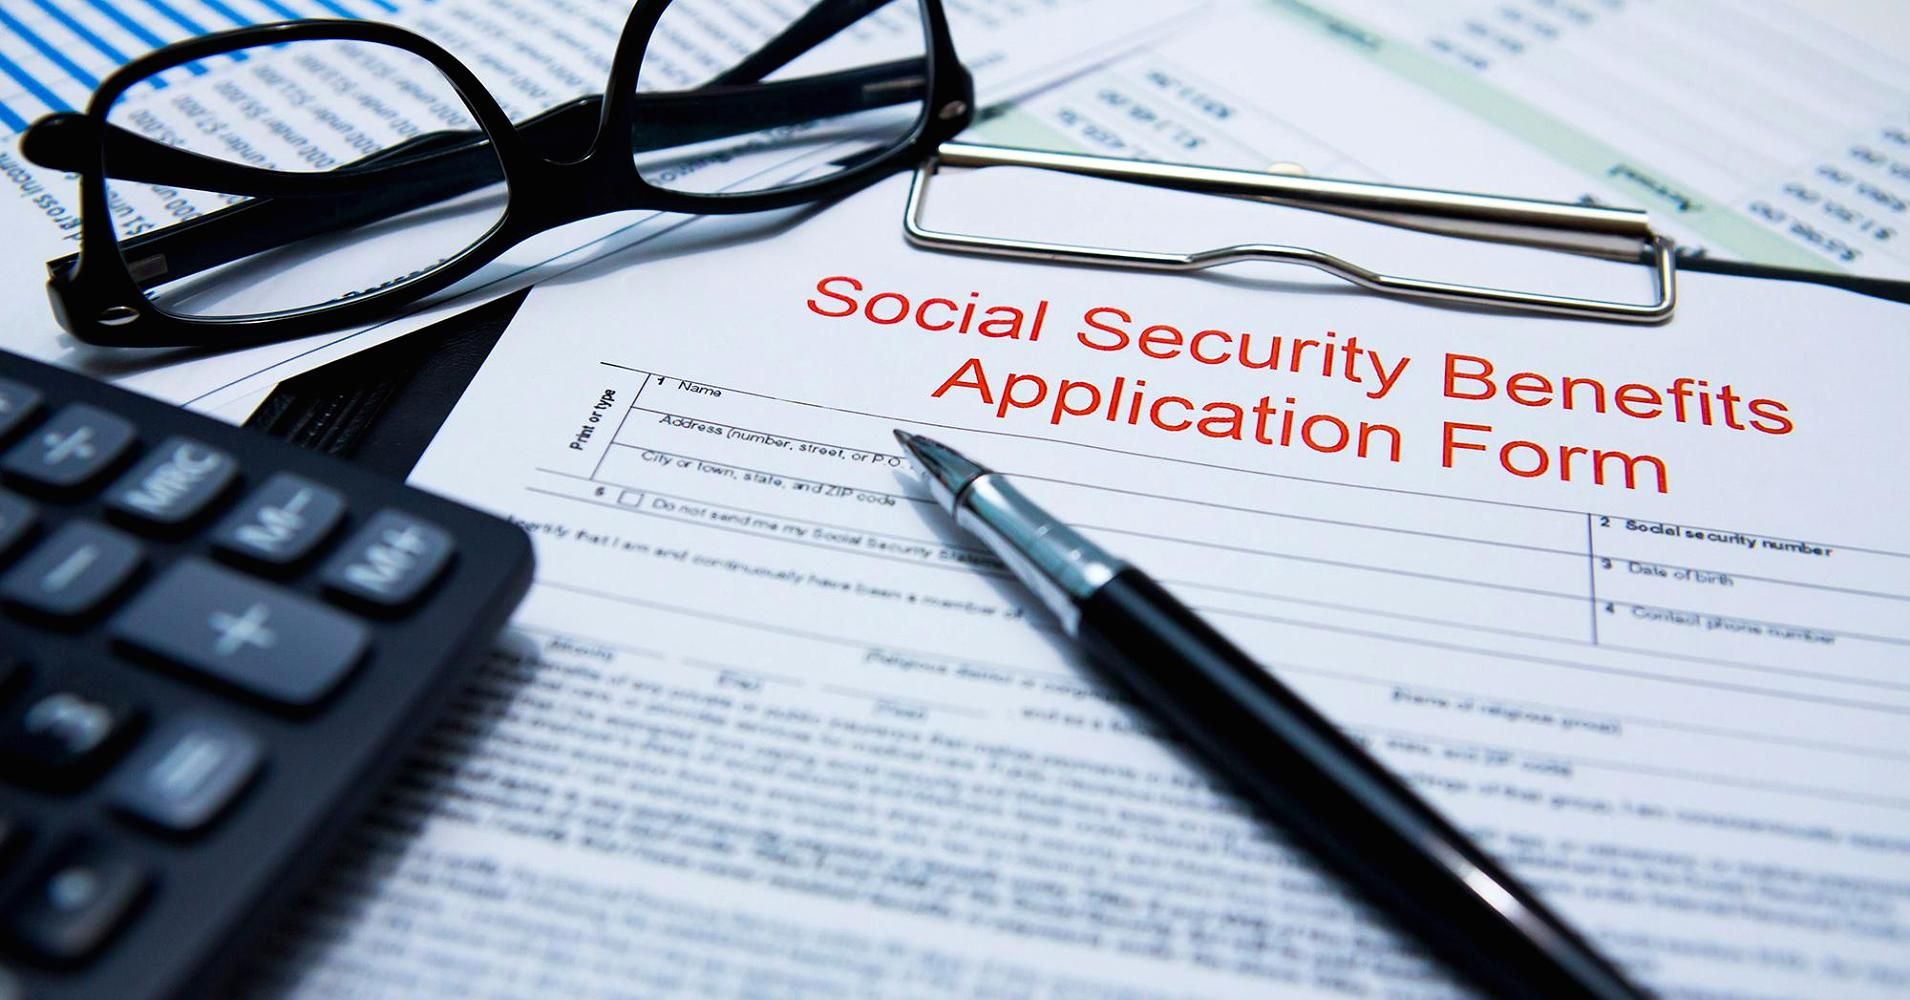 These Free Tools Will Calculate Your Social Security Benefits